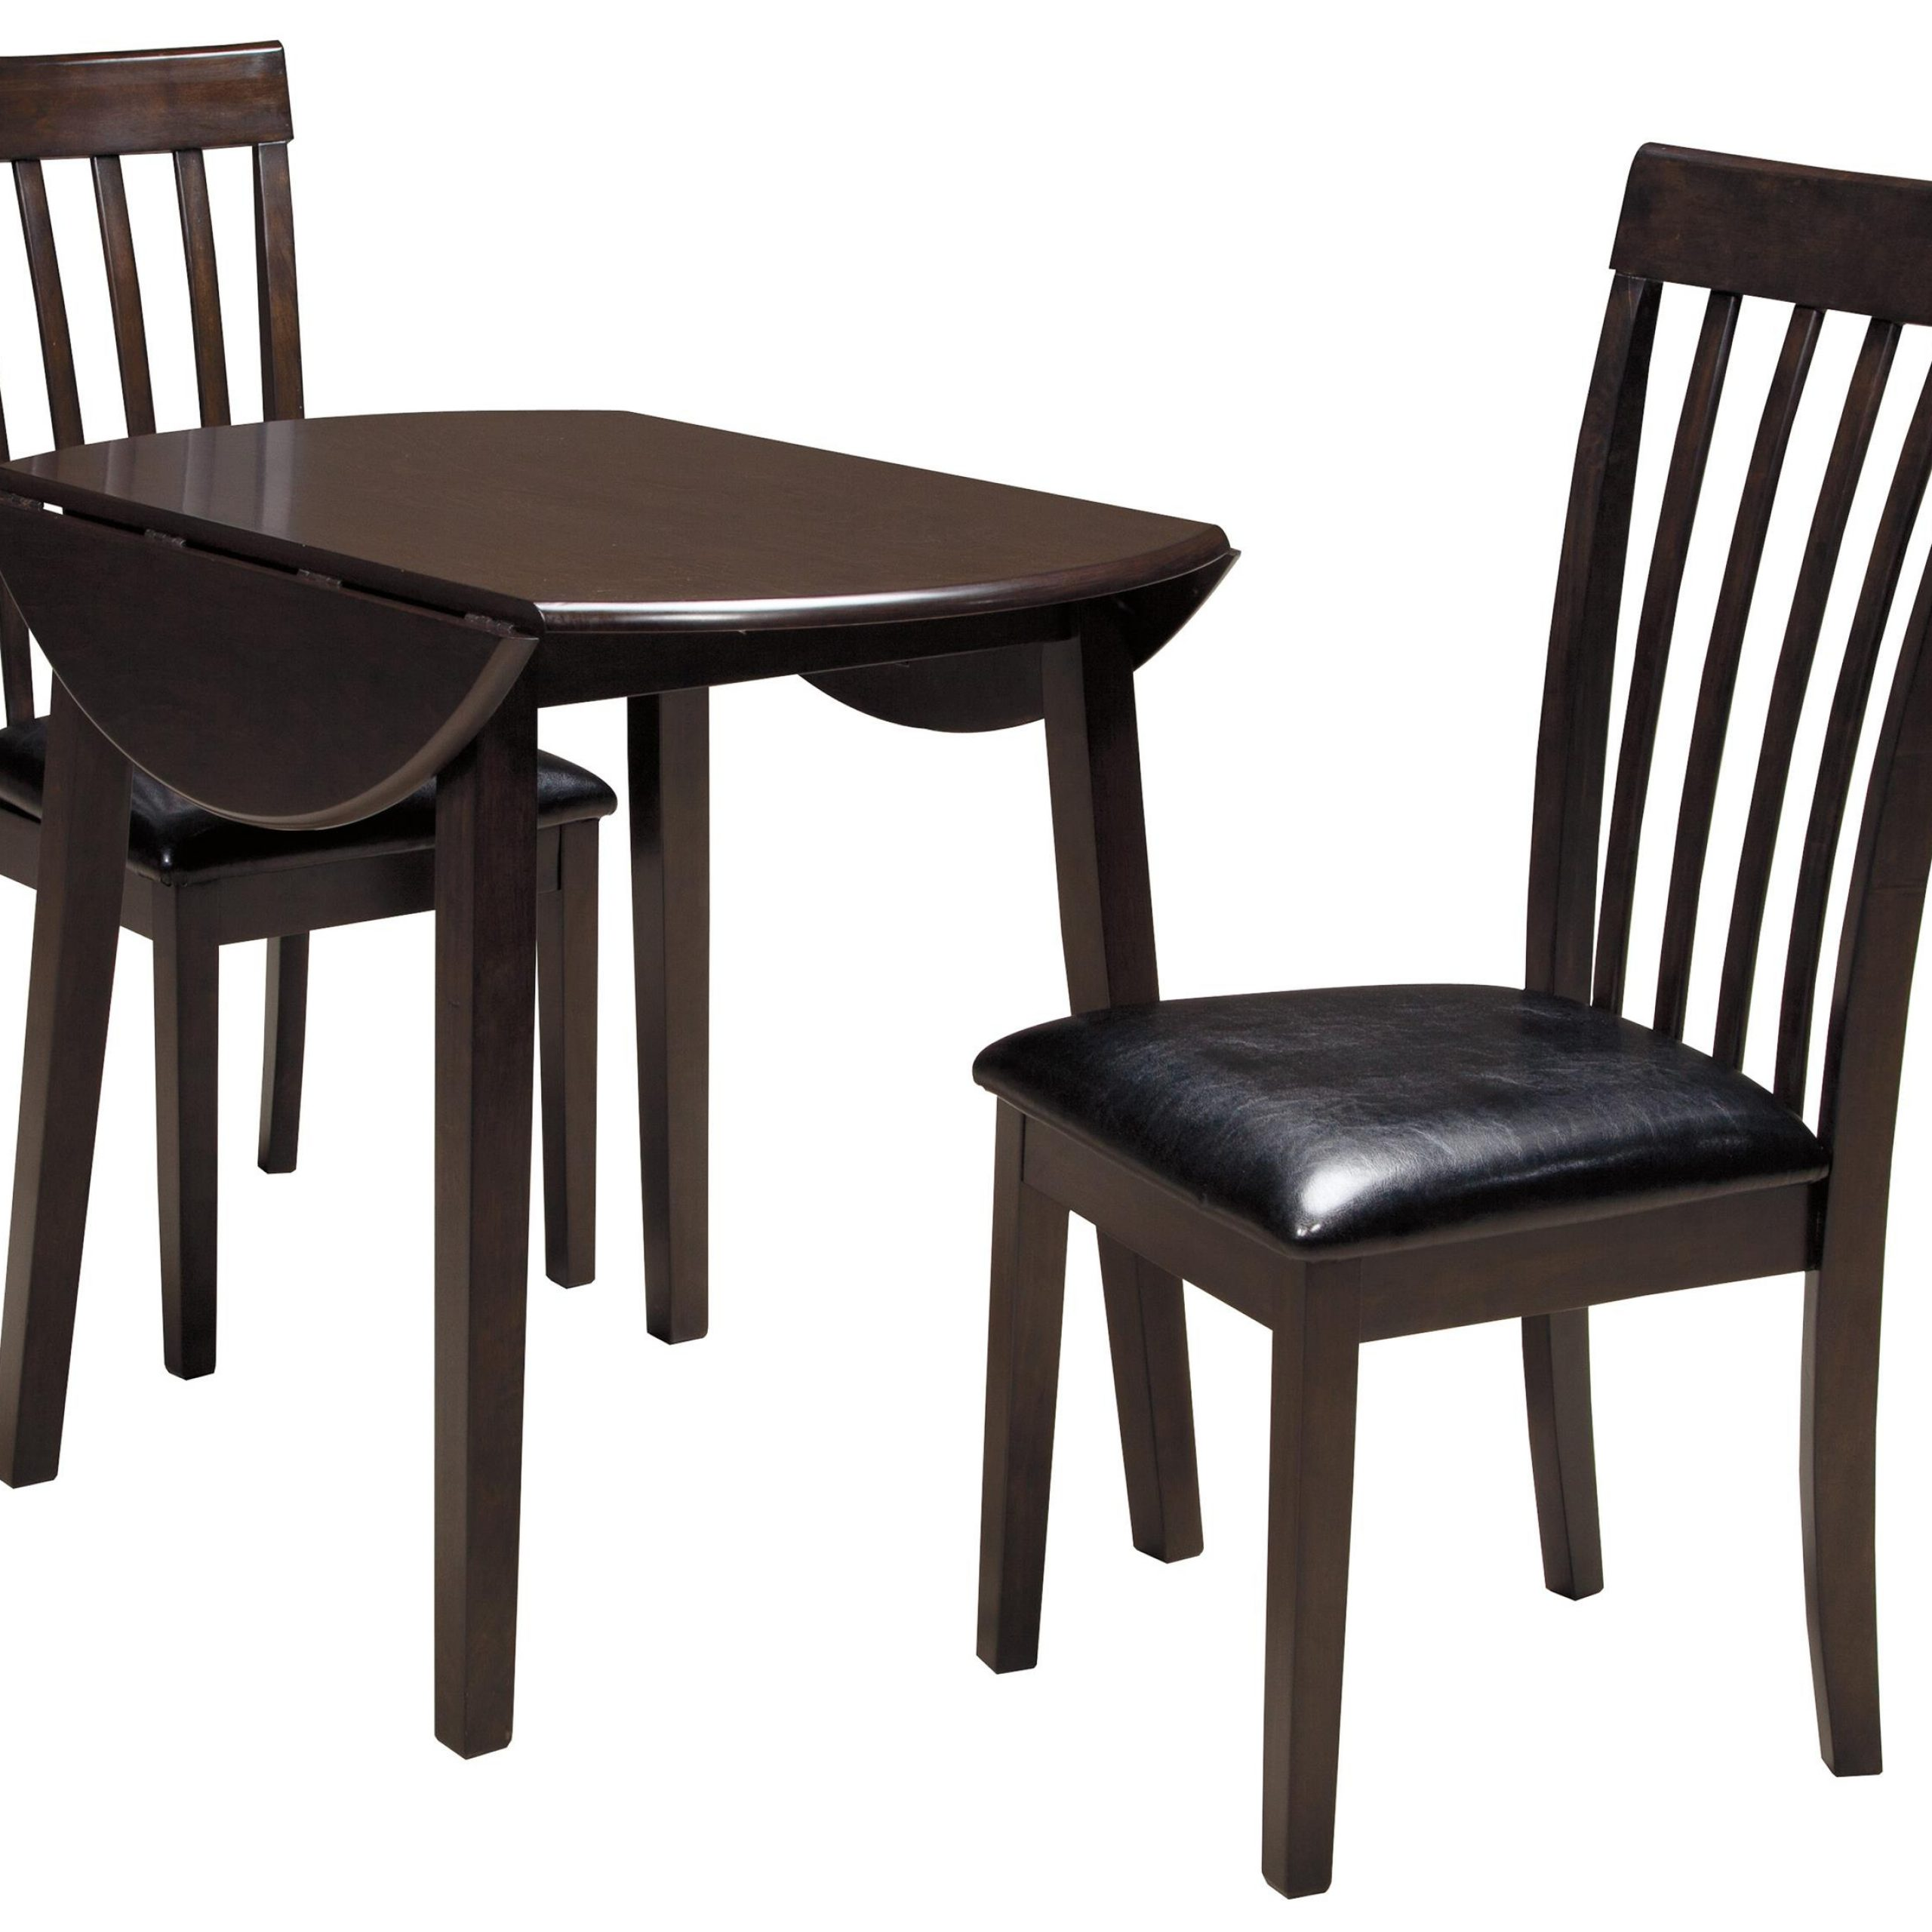 Popular Transitional 3 Piece Drop Leaf Casual Dining Tables Set Throughout Hammis 3 Piece Round Drop Leaf Table Set (View 14 of 25)